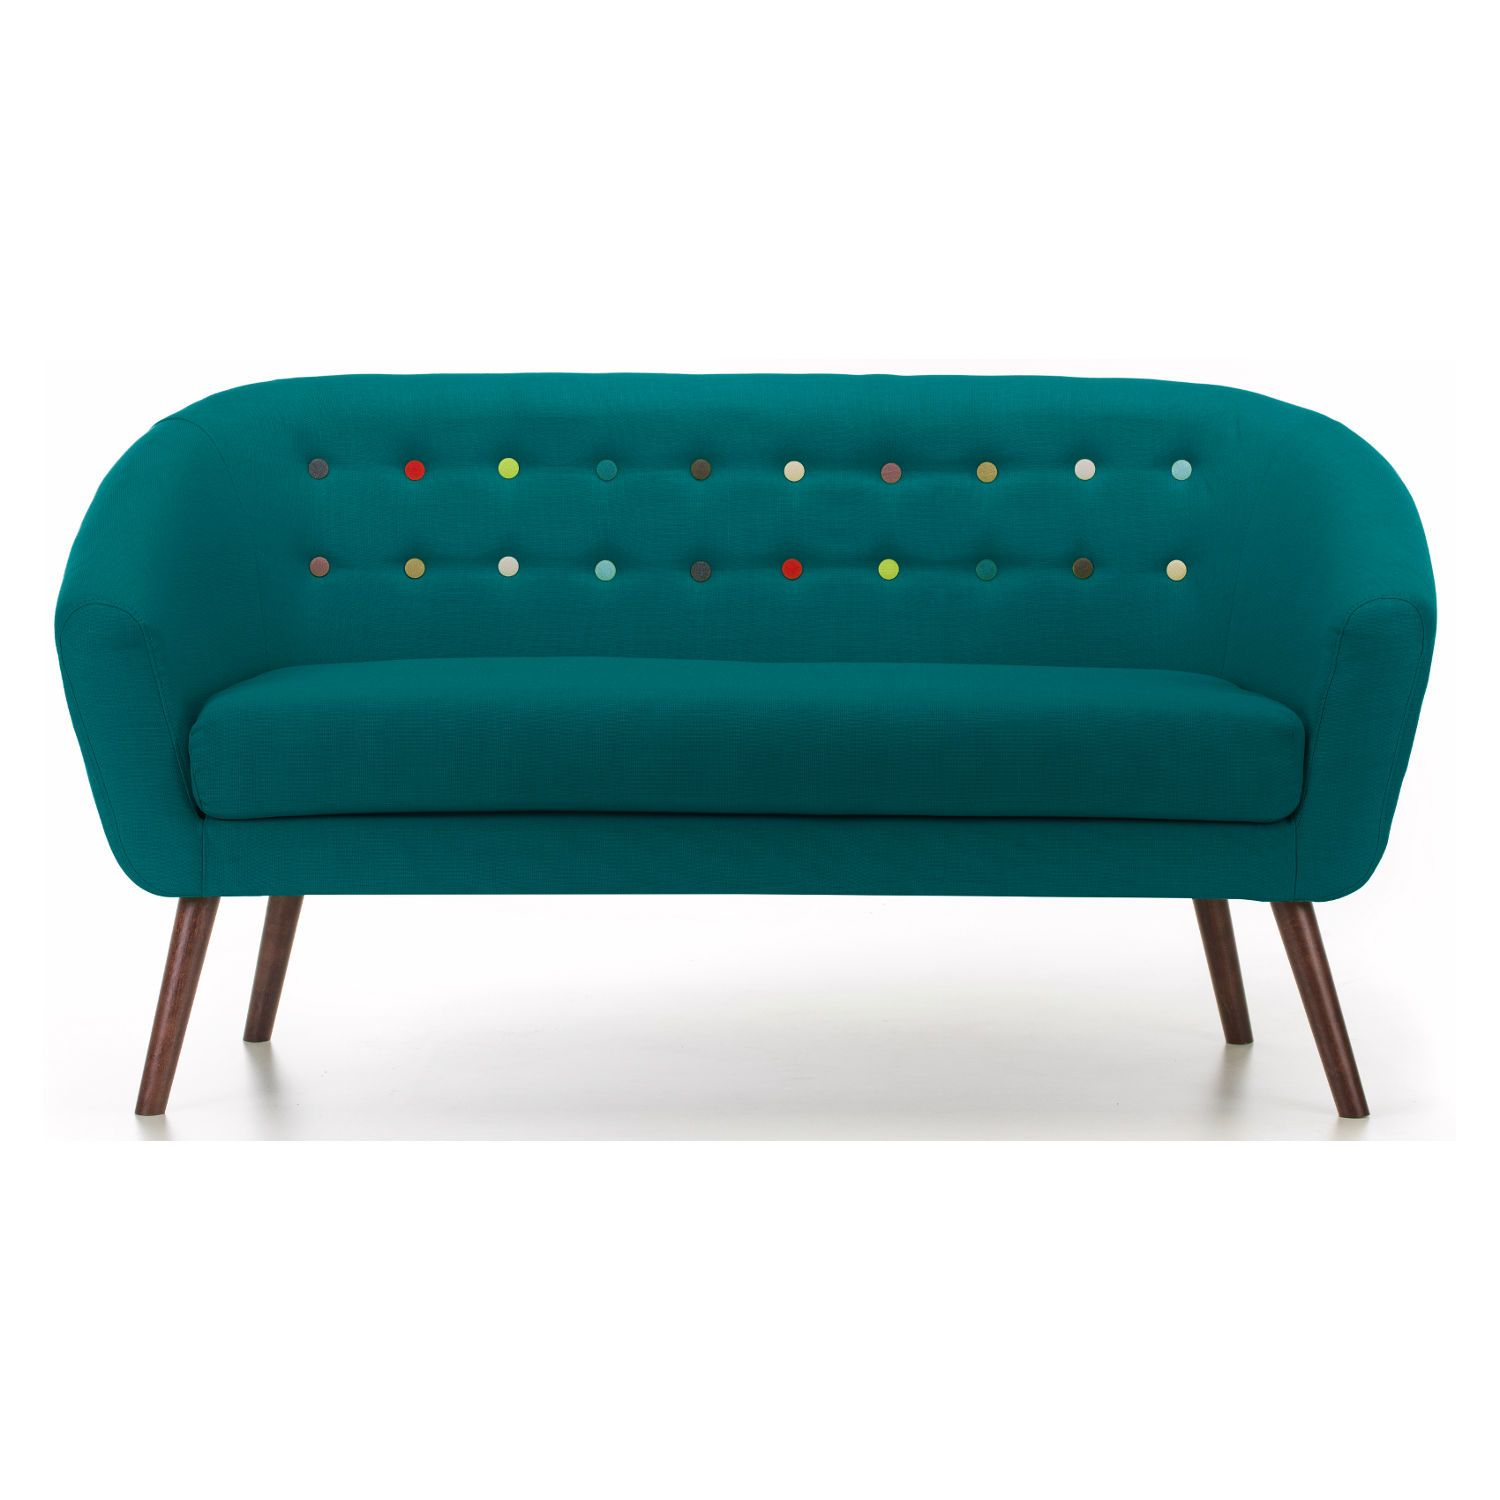 Athena 2 Seater Sofa Teal | Teal Coloured Home Furnishings and ...